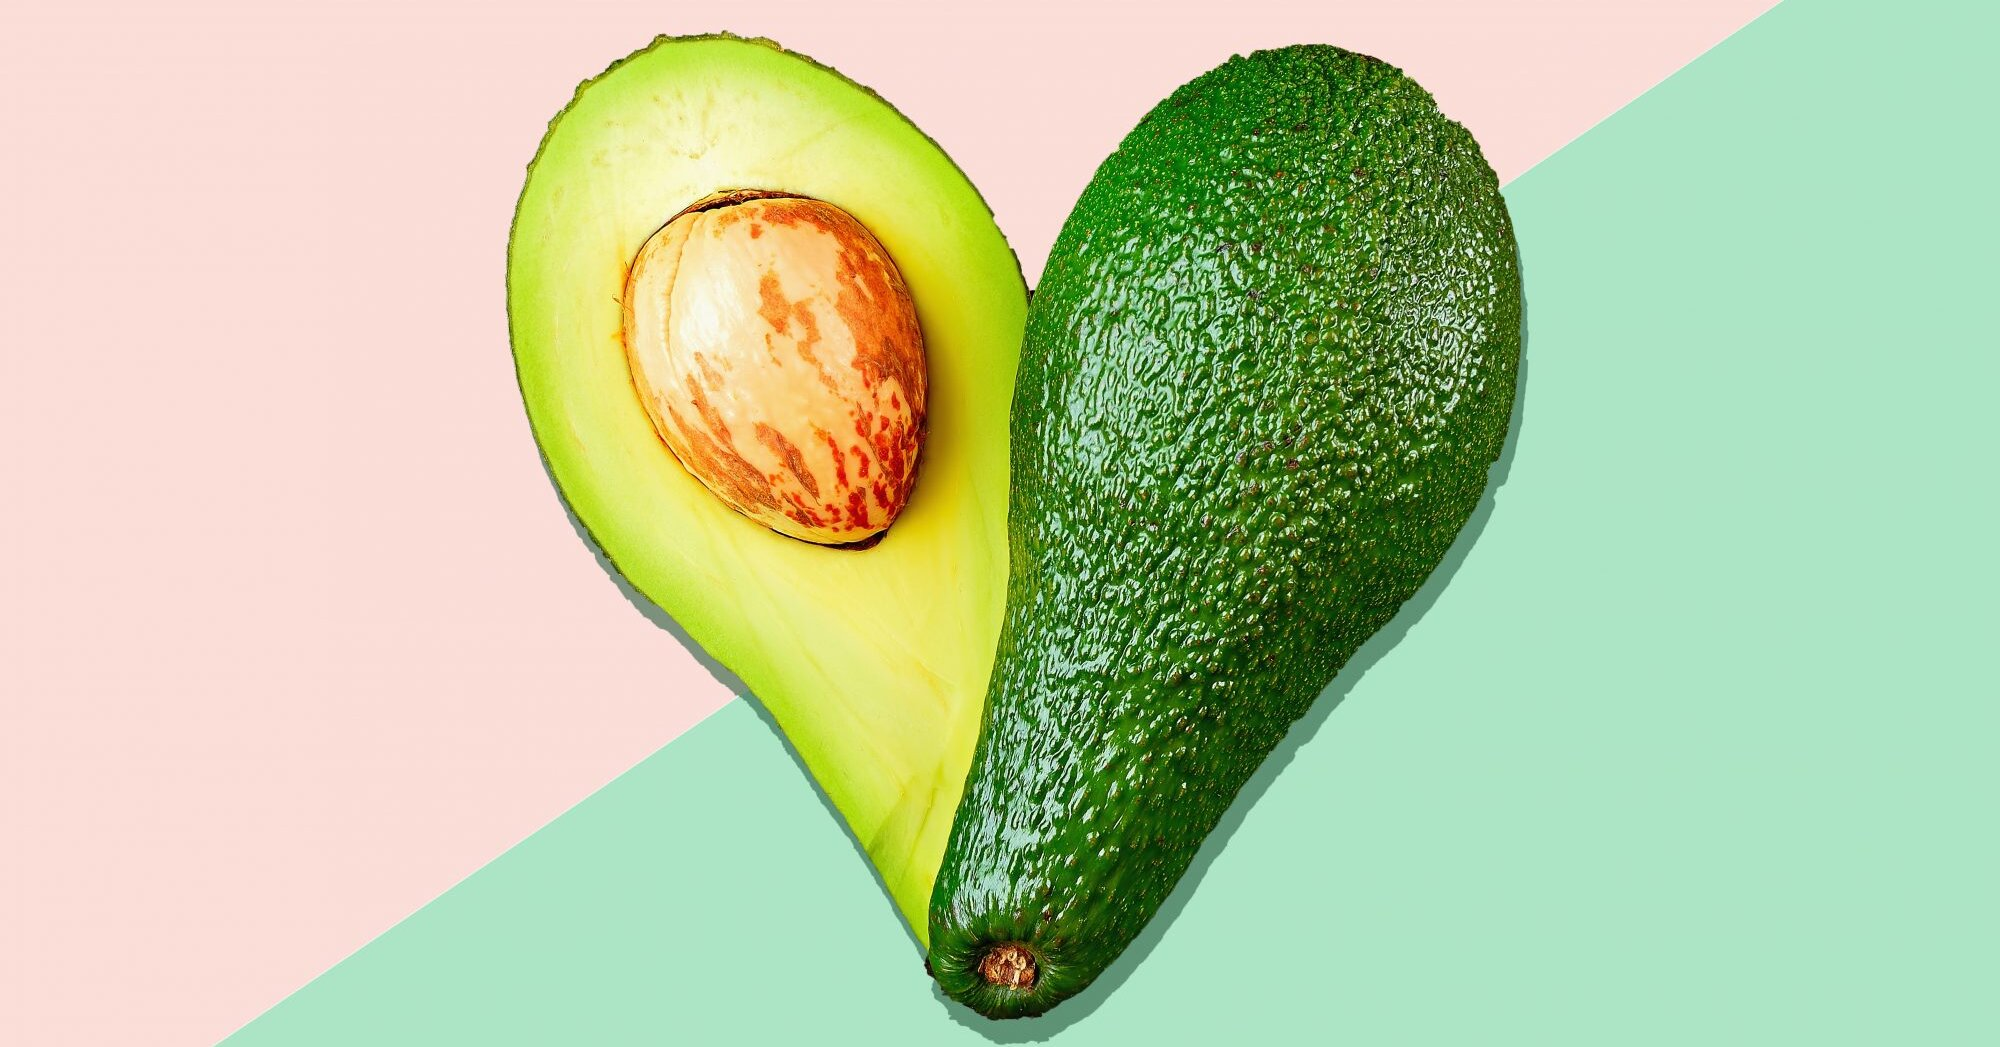 Good News: Avocados Are Even Healthier Than You Thought